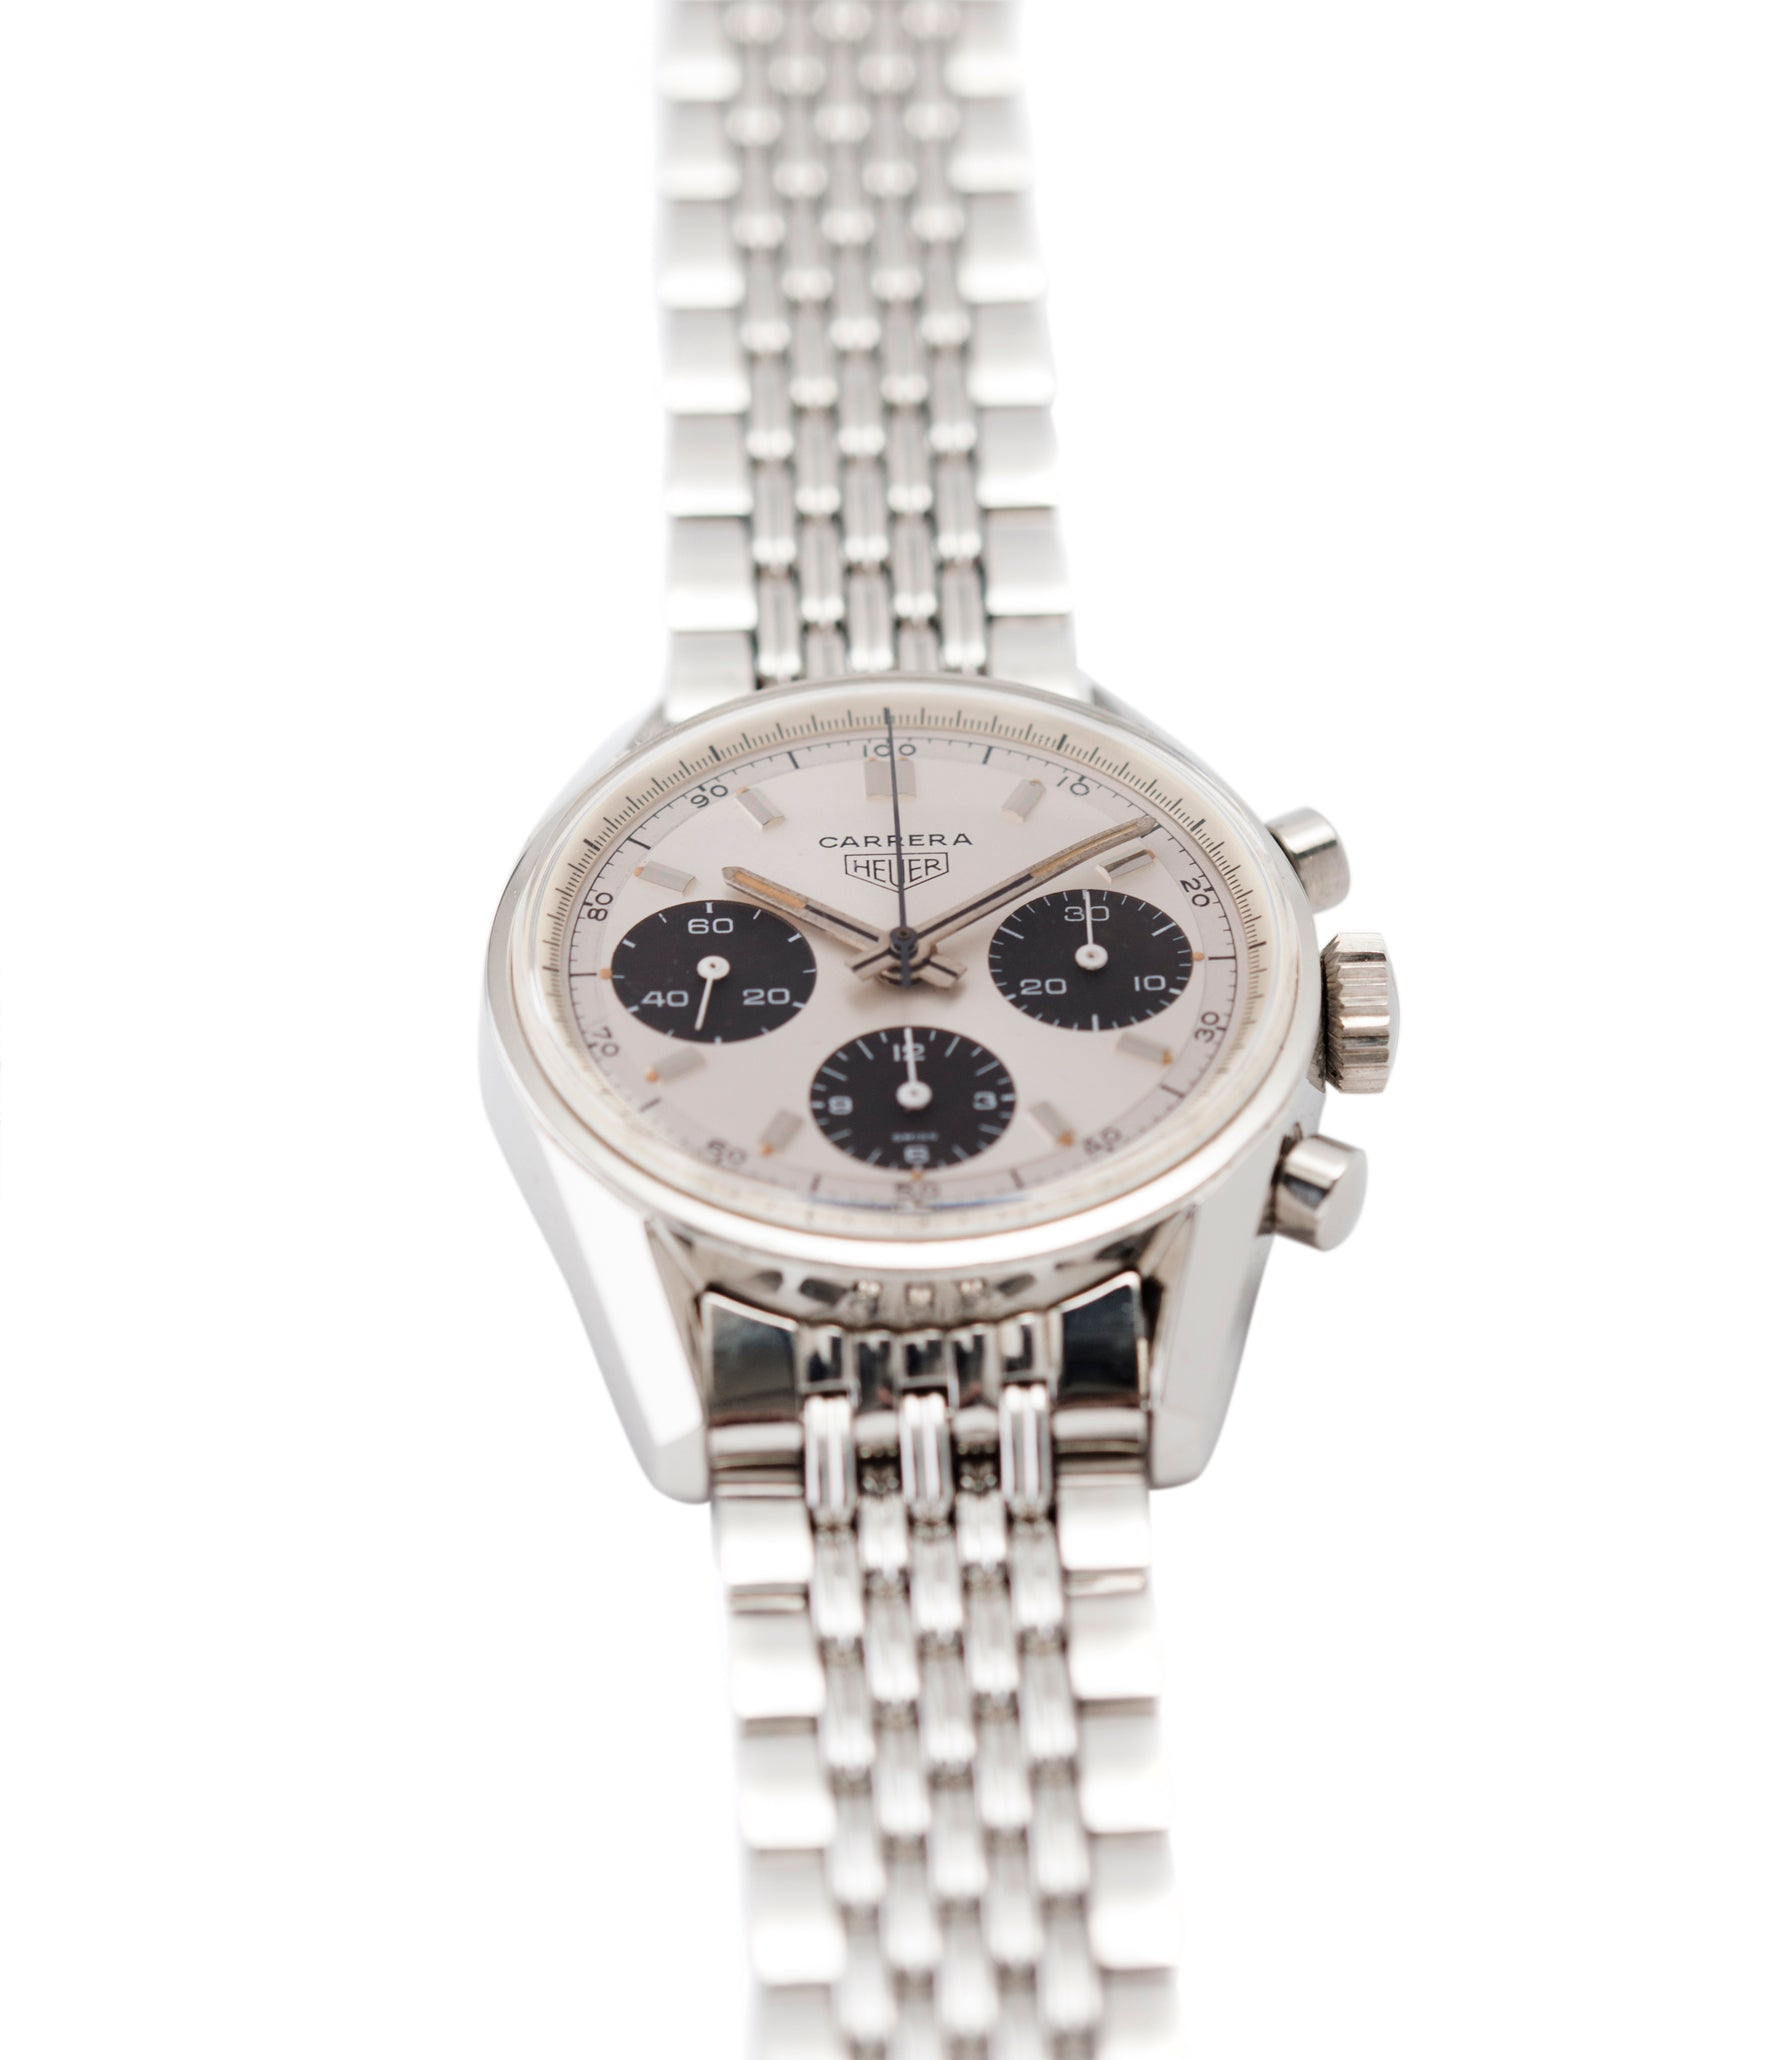 for sale vintage Heuer Carrera 2447SND panda dial steel sport watch online at A Collected Man London UK specialist of rare vintage watches